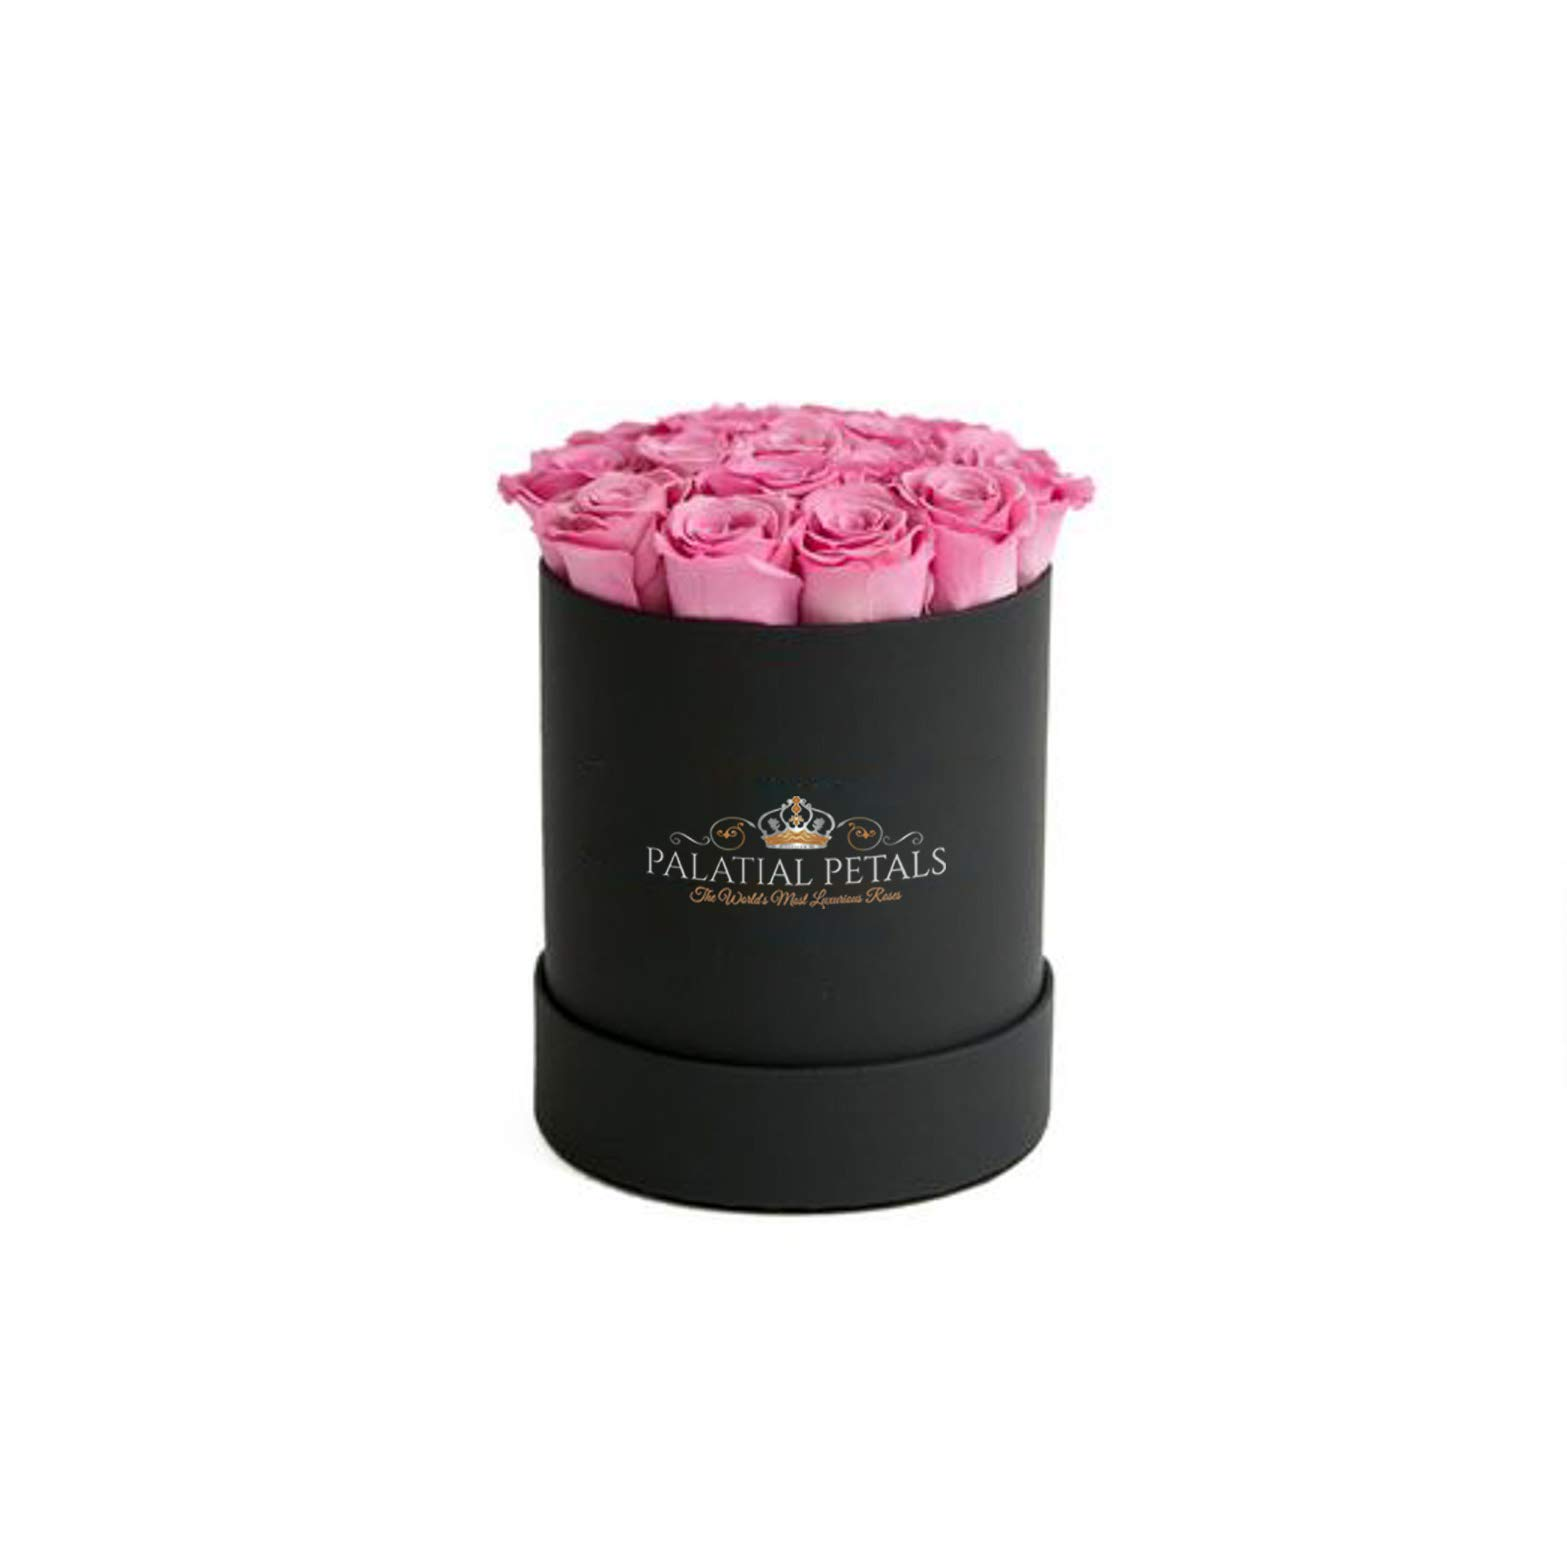 PALATIAL PETALS Real Cut Roses That Last 365 Days - Preserved Real Roses in Box (Roses in a Box, Home Decor, Best Gift for Her, Anniversaries, Birthdays & Weddings)